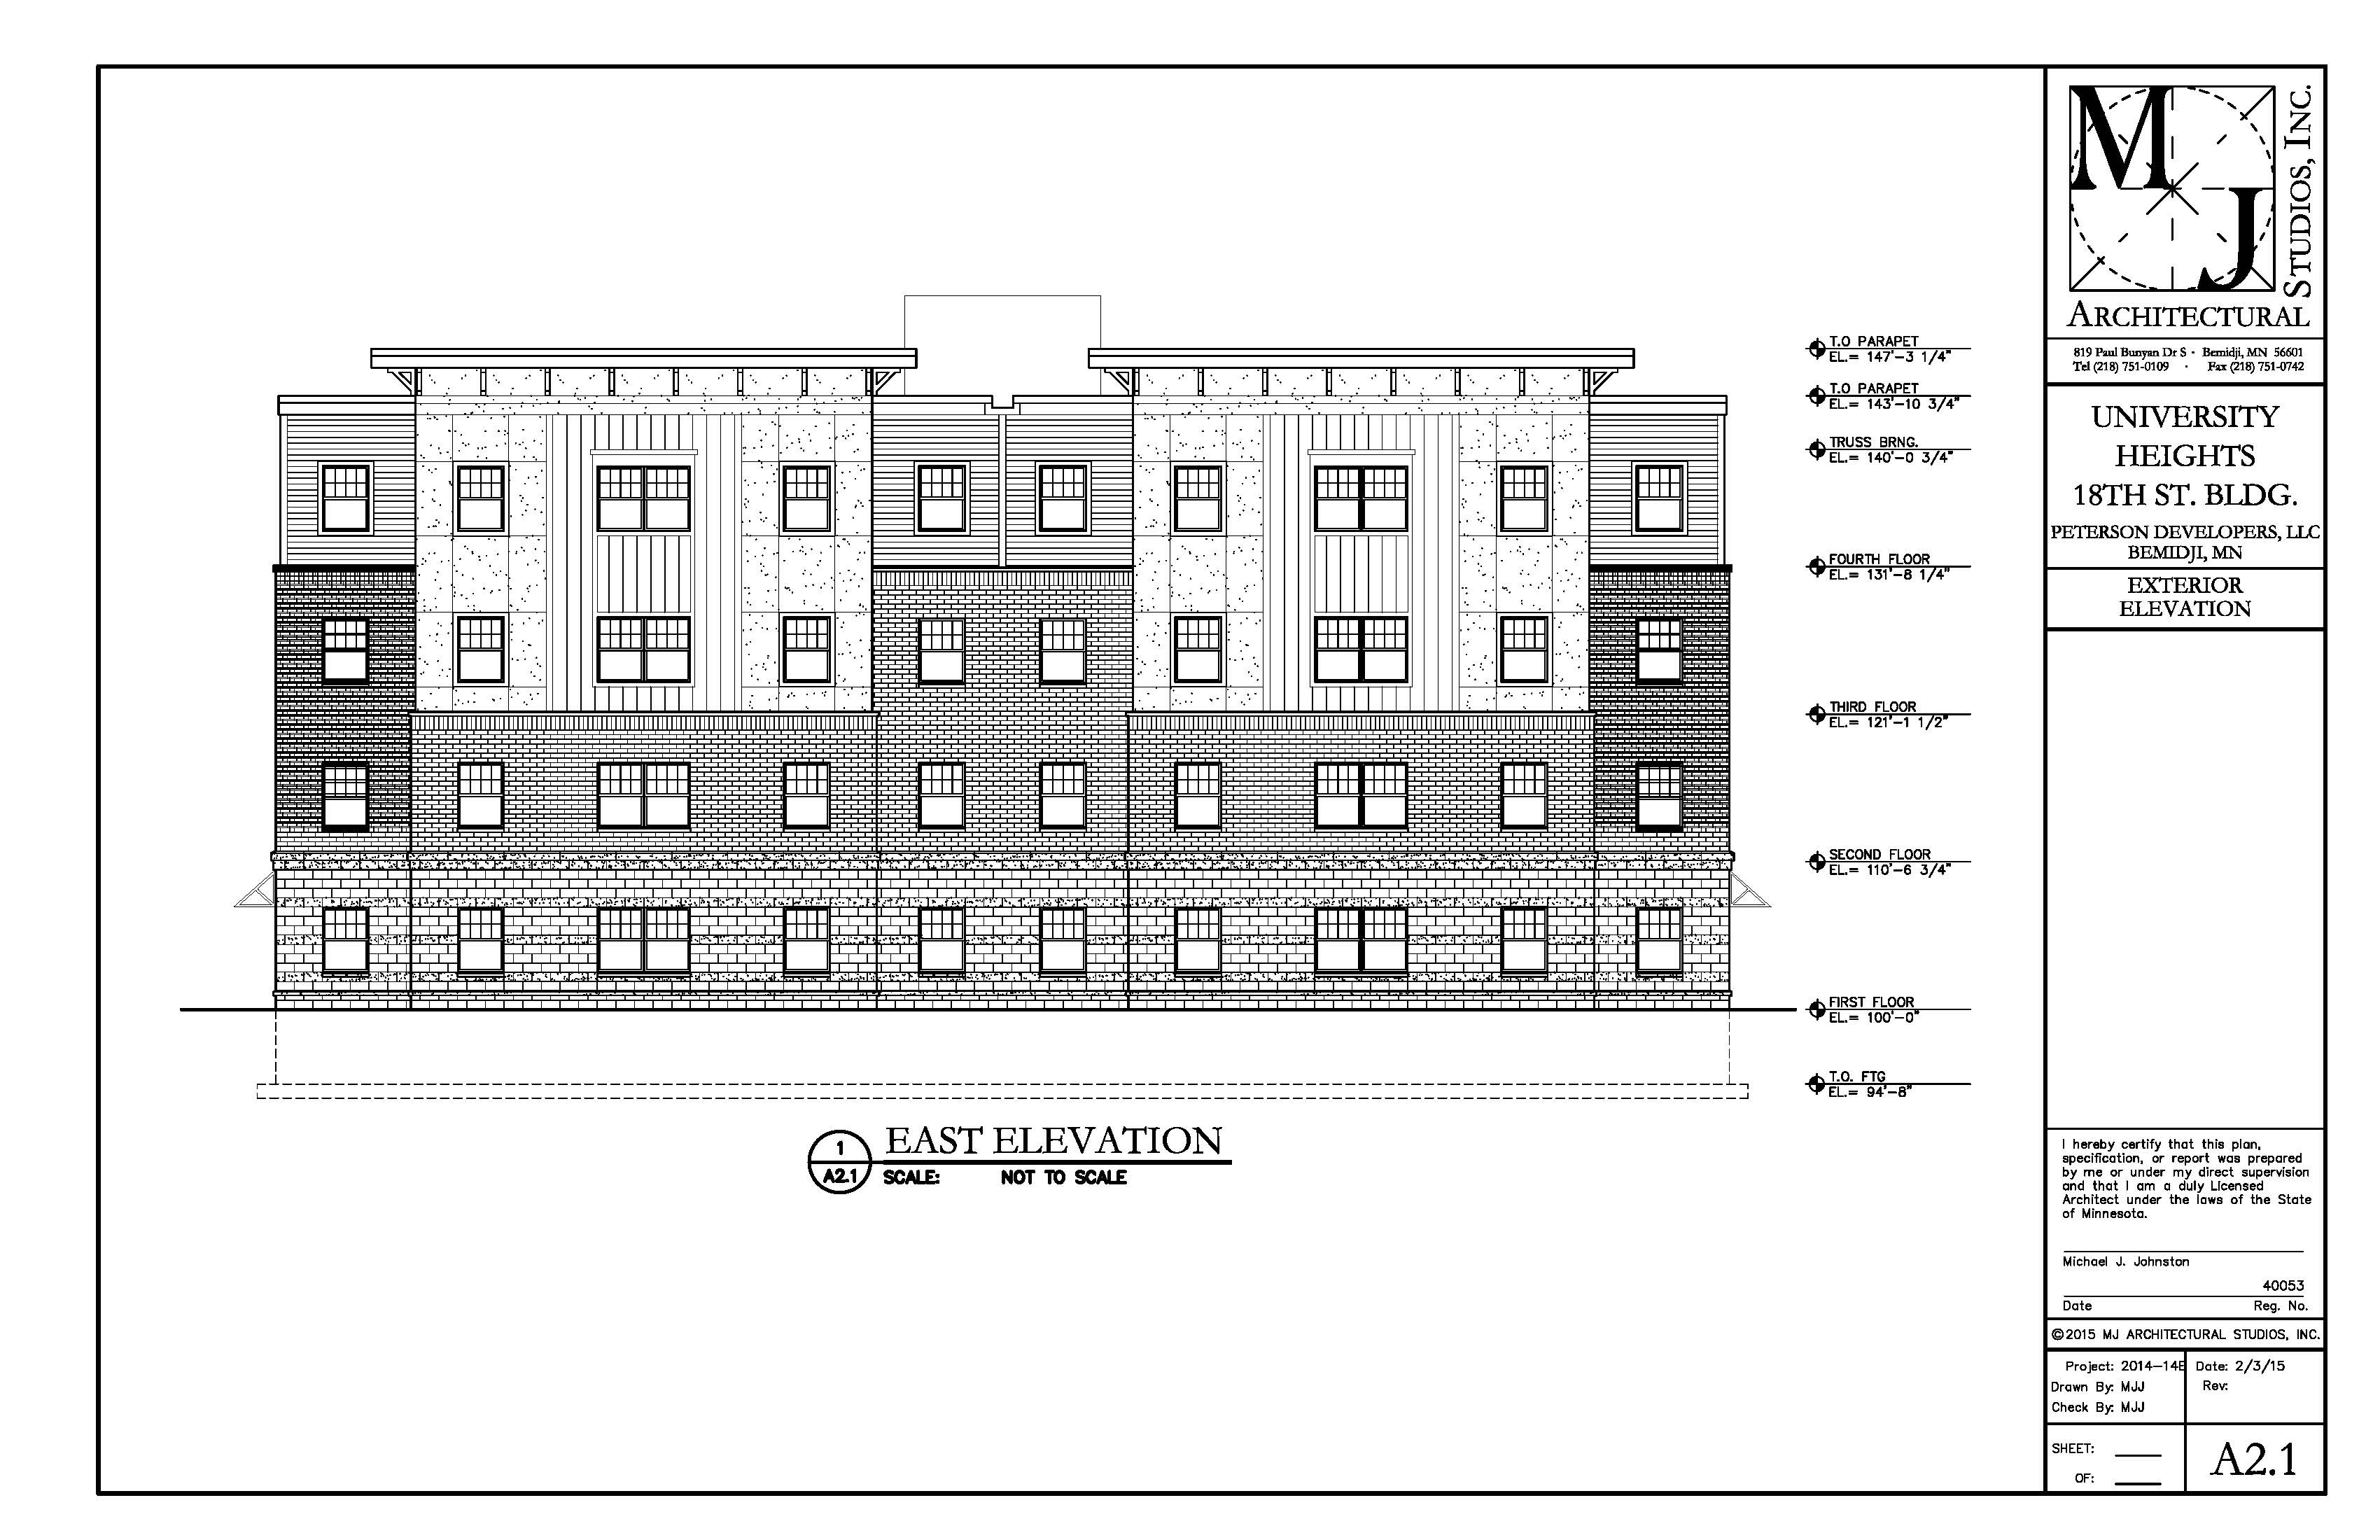 Exterior Elevation Plan : Gallery plans for university heights bsu news bemidji